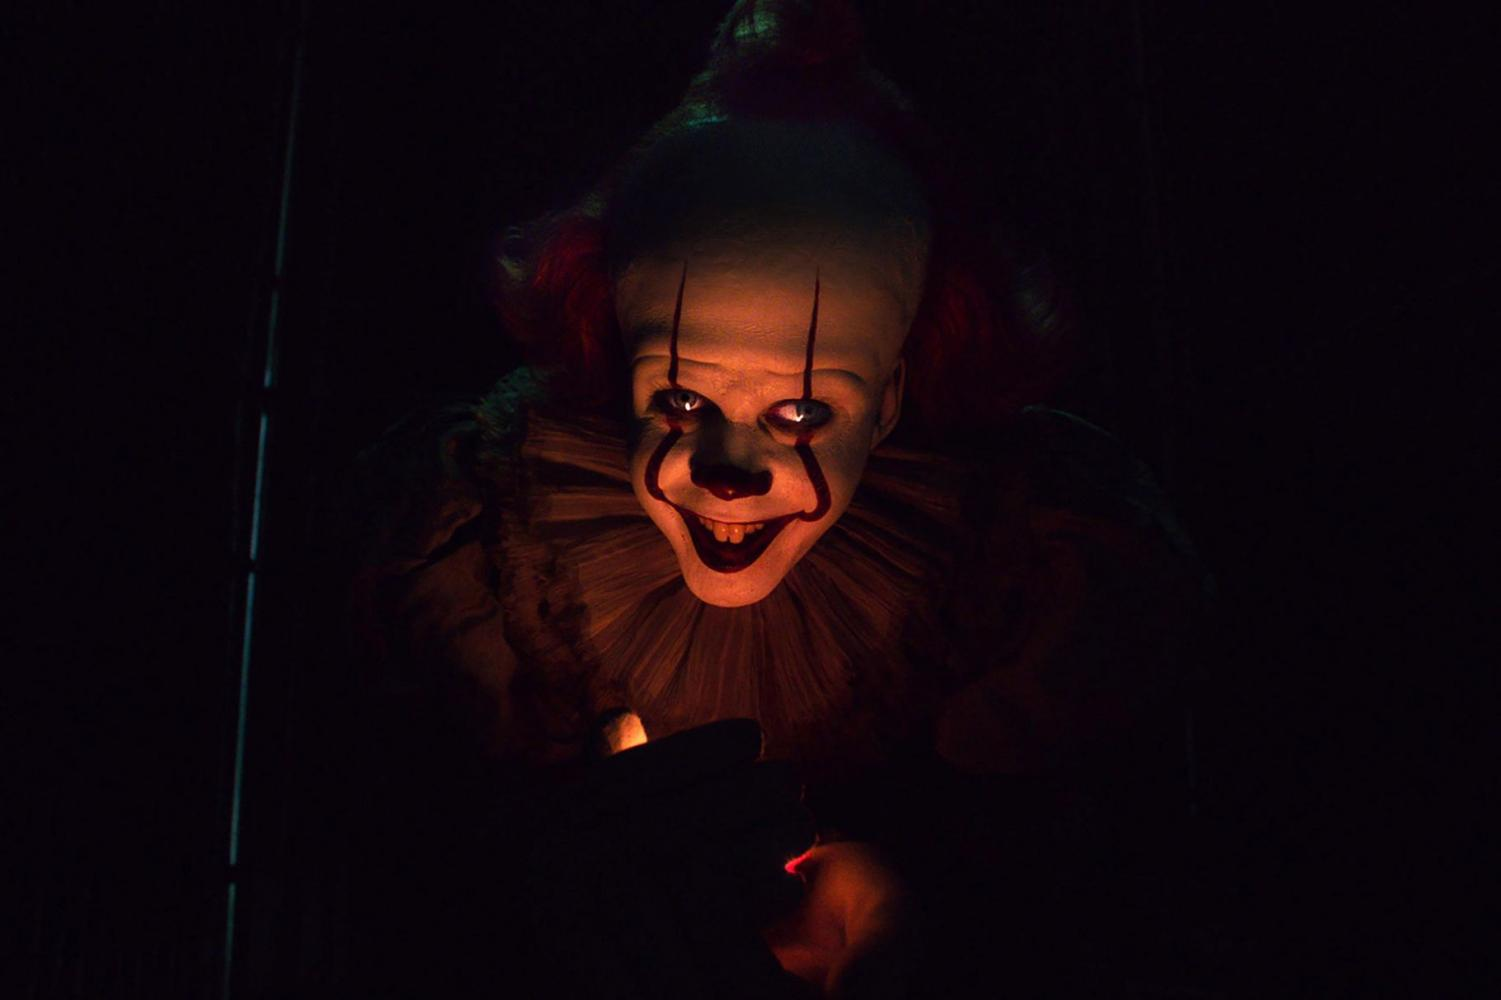 Pennywise the Clown lures in unsuspecting victims in IT: Chapter Two